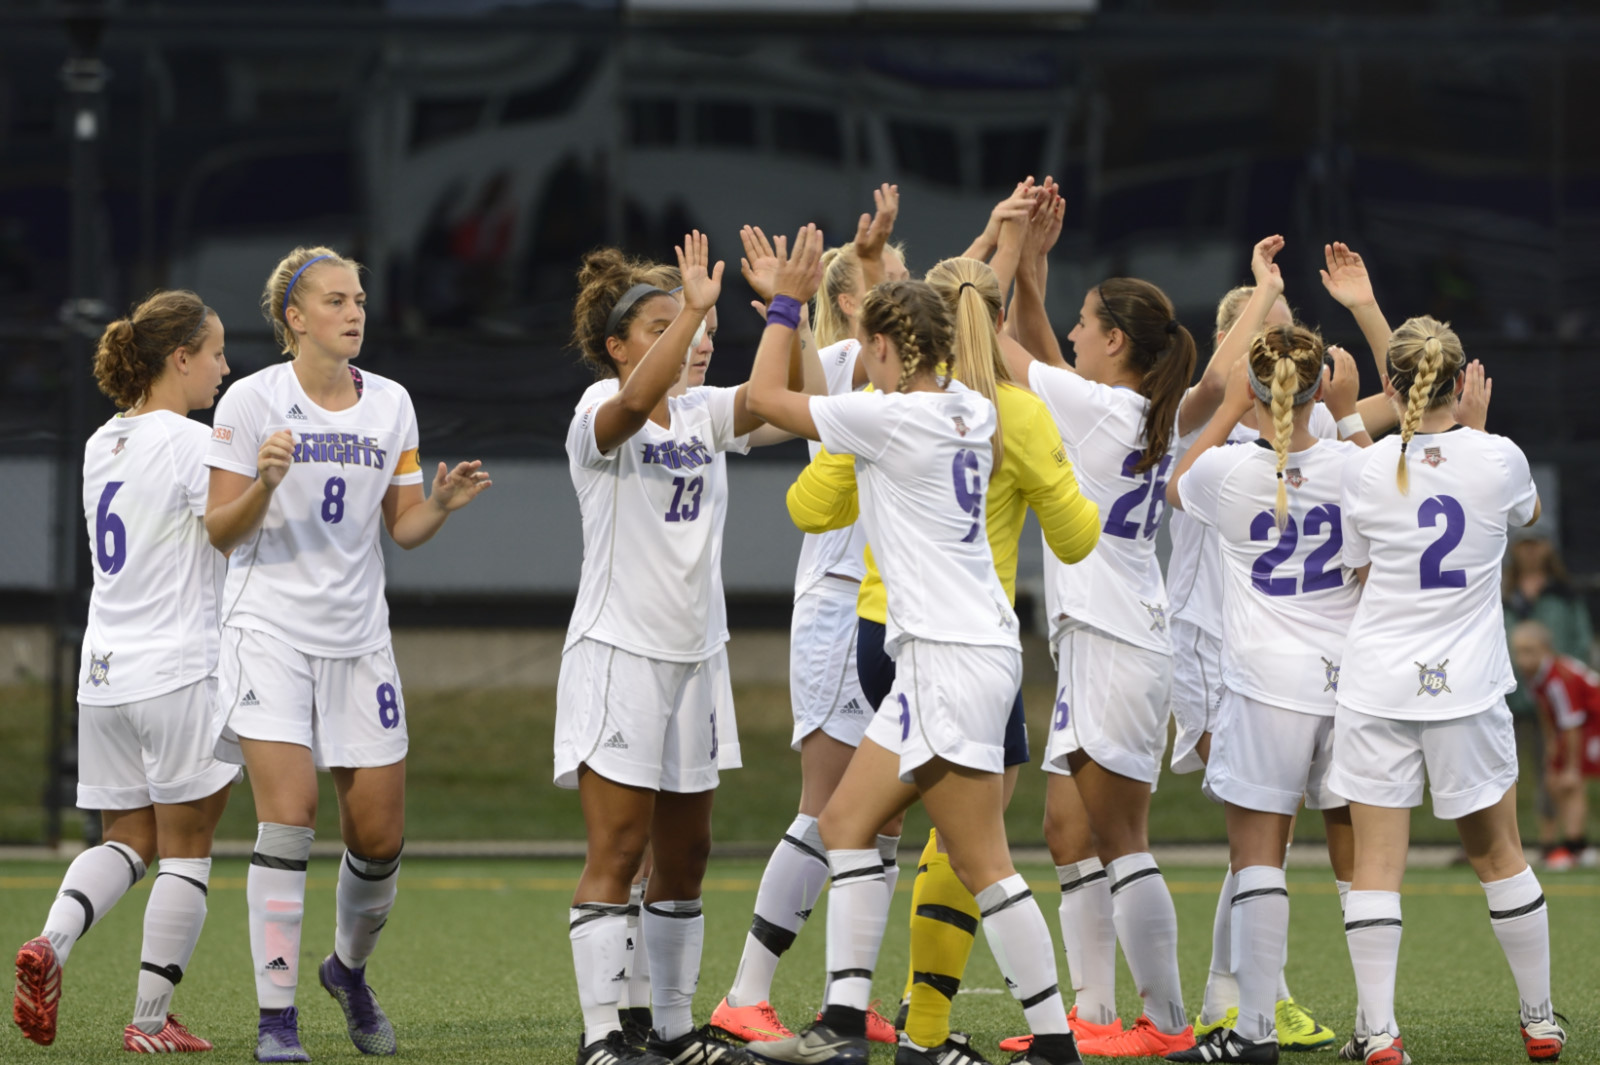 Purple Knights Advance To NCAA Divsion II Women's Soccer Regional Final With 3-2 Win Over American International